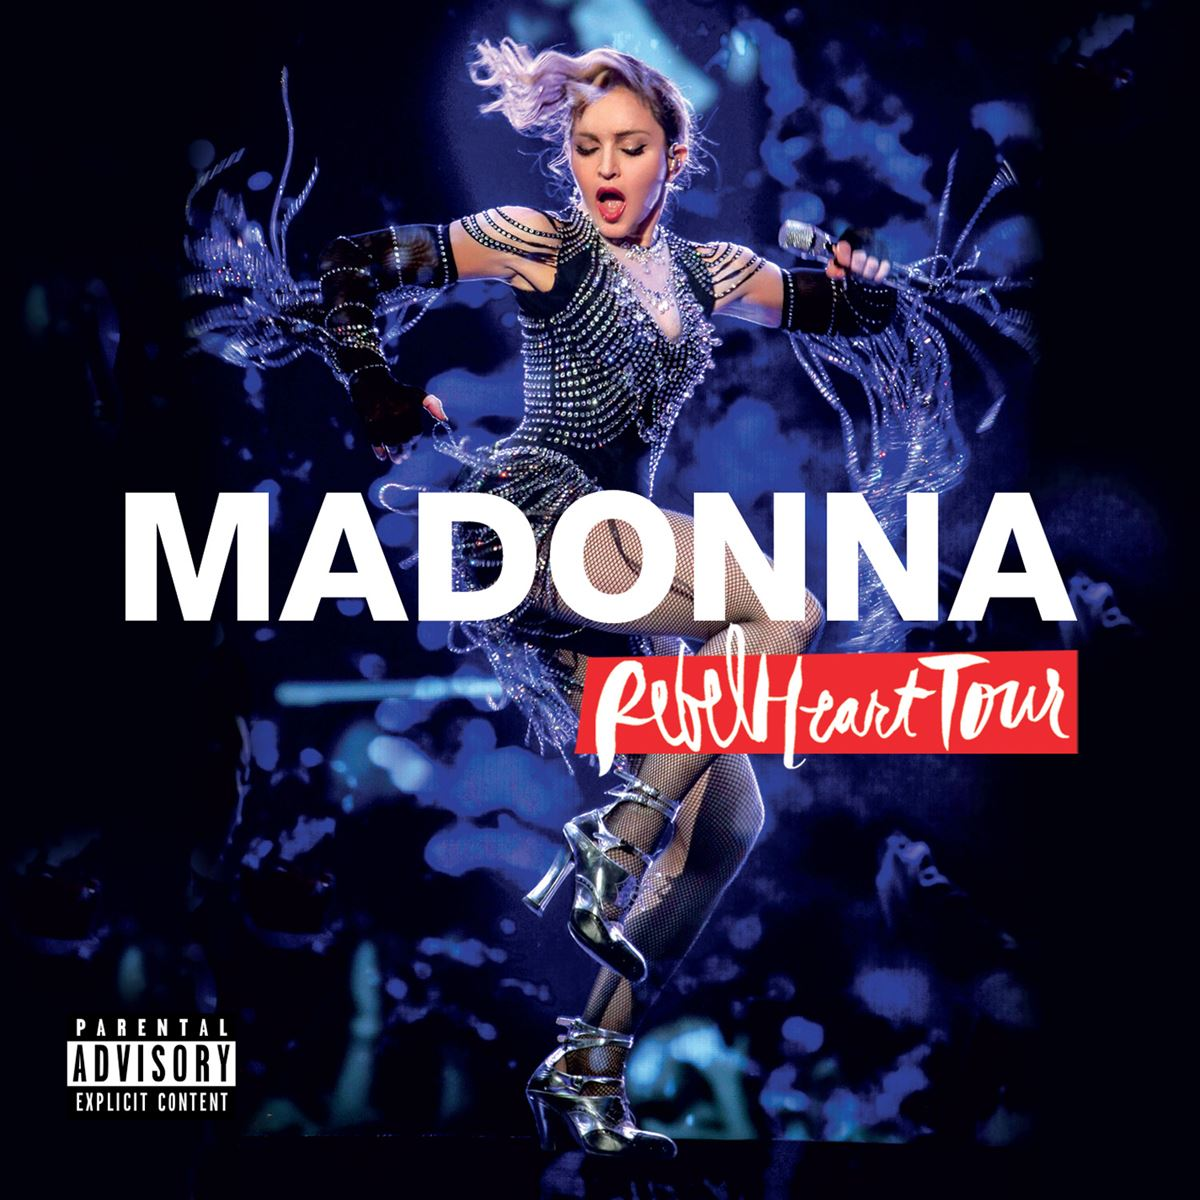 2cd madonna rebel heart tour  - Sanborns